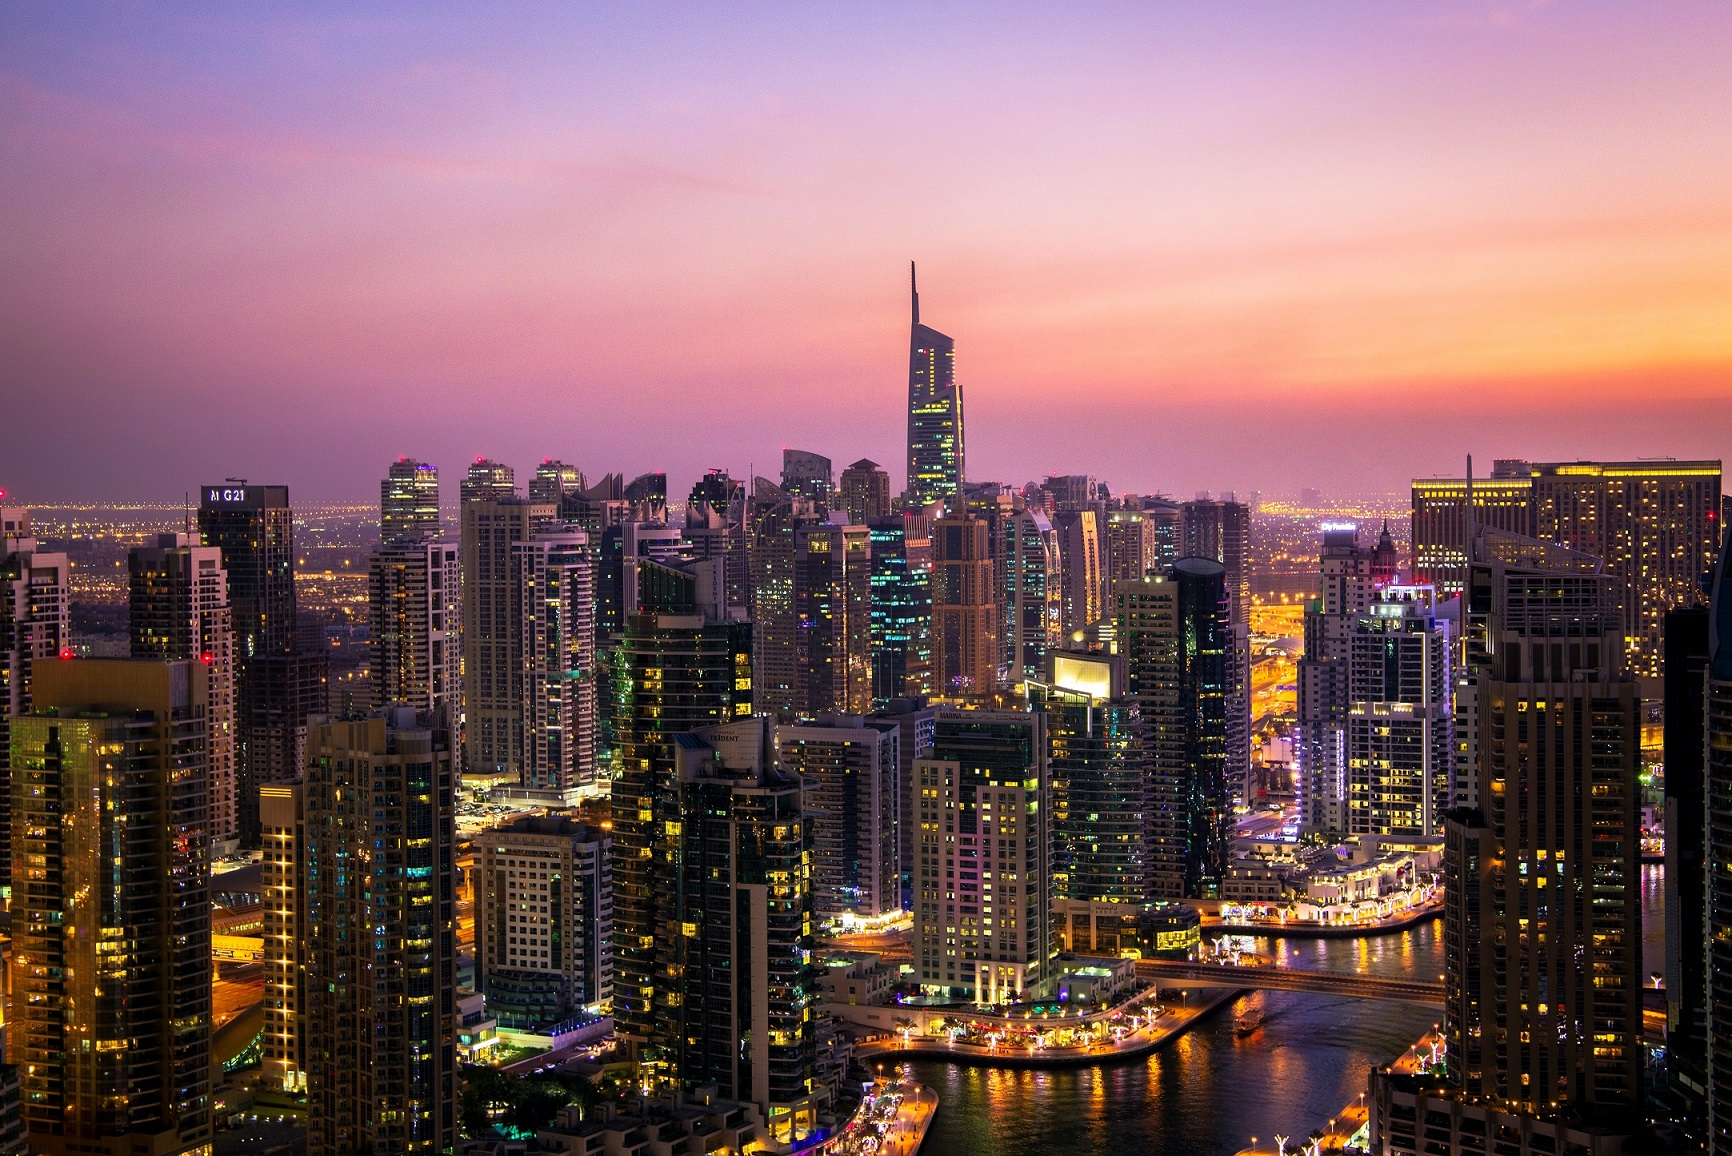 DTCM: Dubai sees 4.75 million visitors in first quarter of 2019